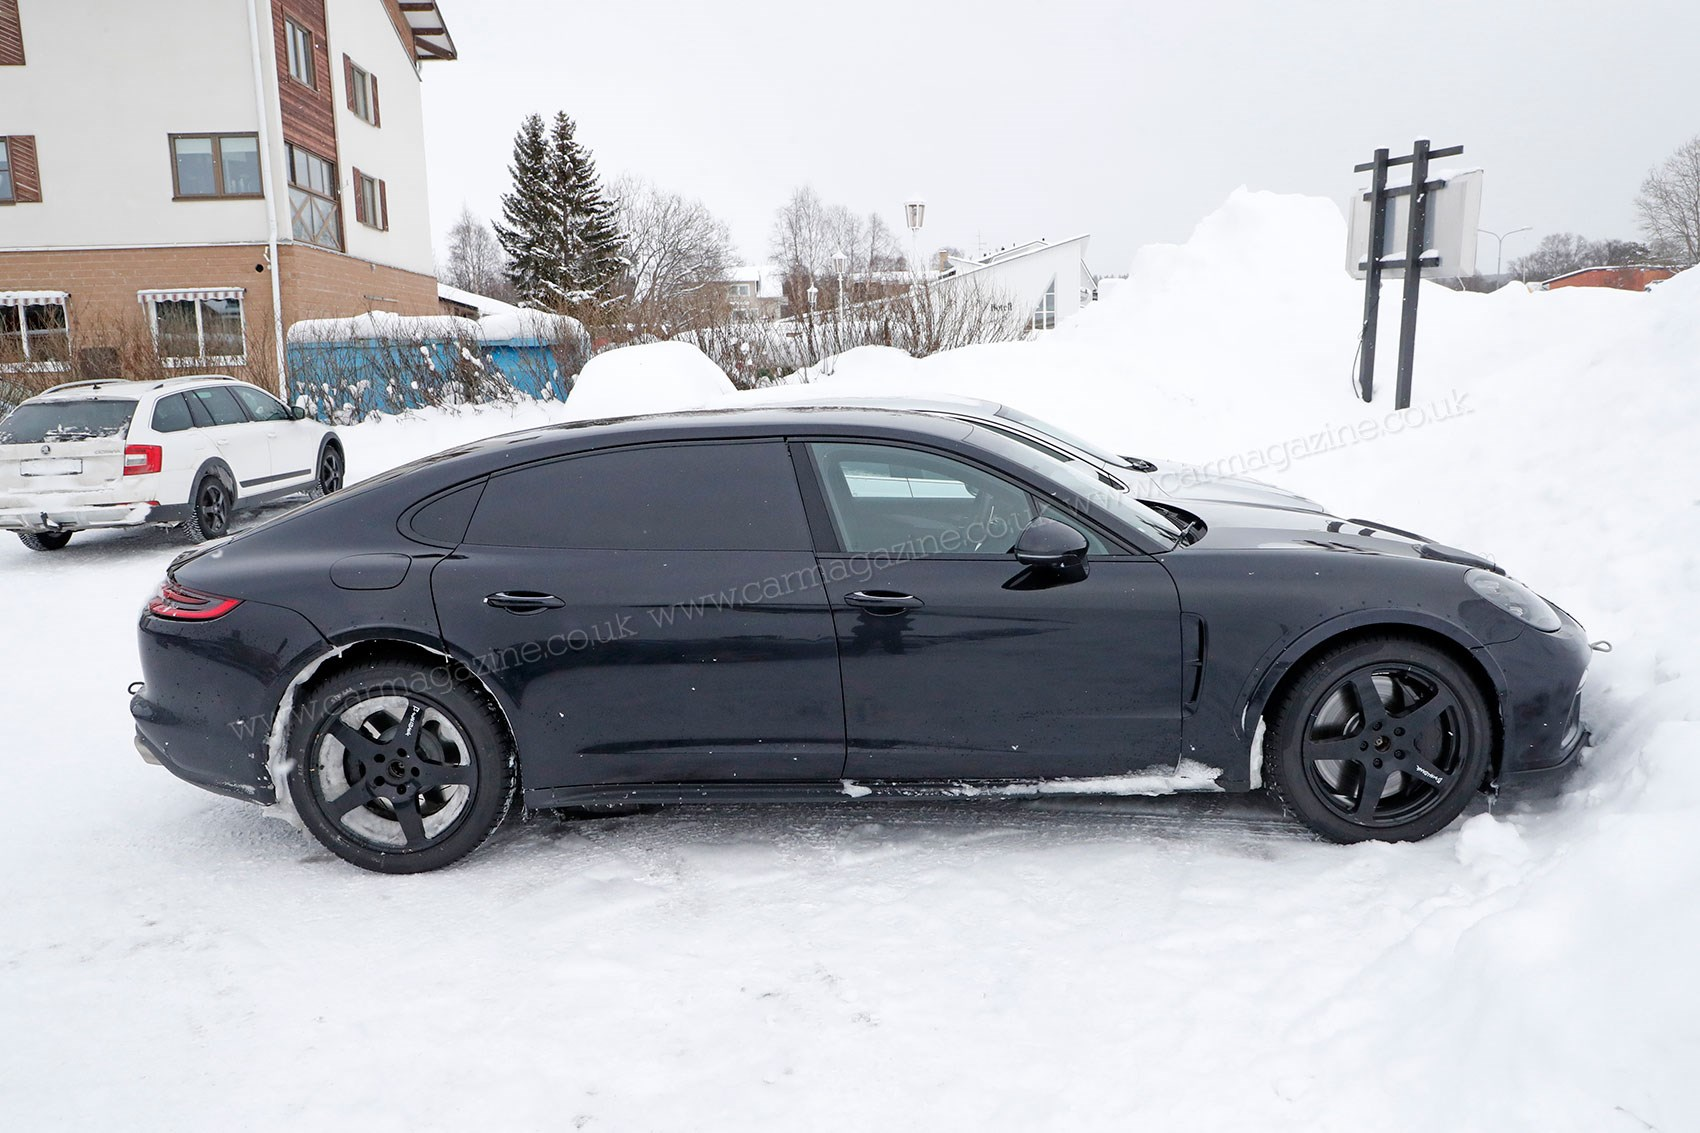 Bentley Flying Spur (2019) Spy Photos And Information